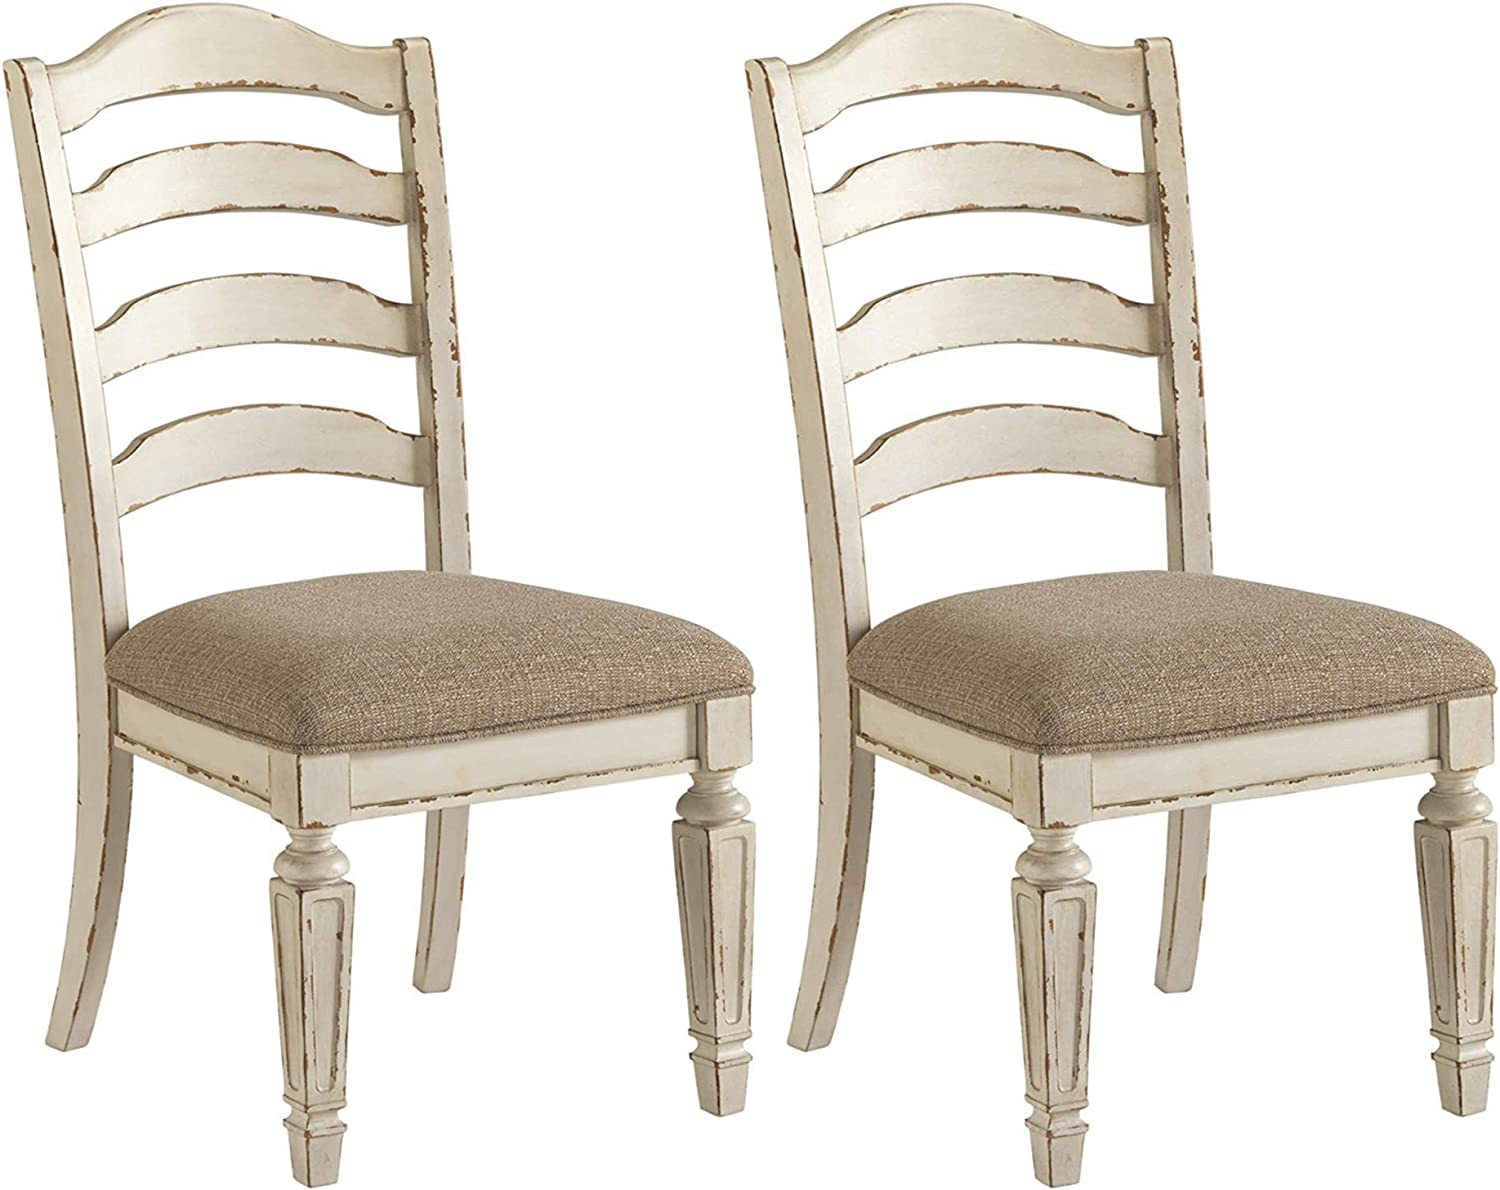 Best for high backrest: Signature Design by Ashley Side Dining Chairs.